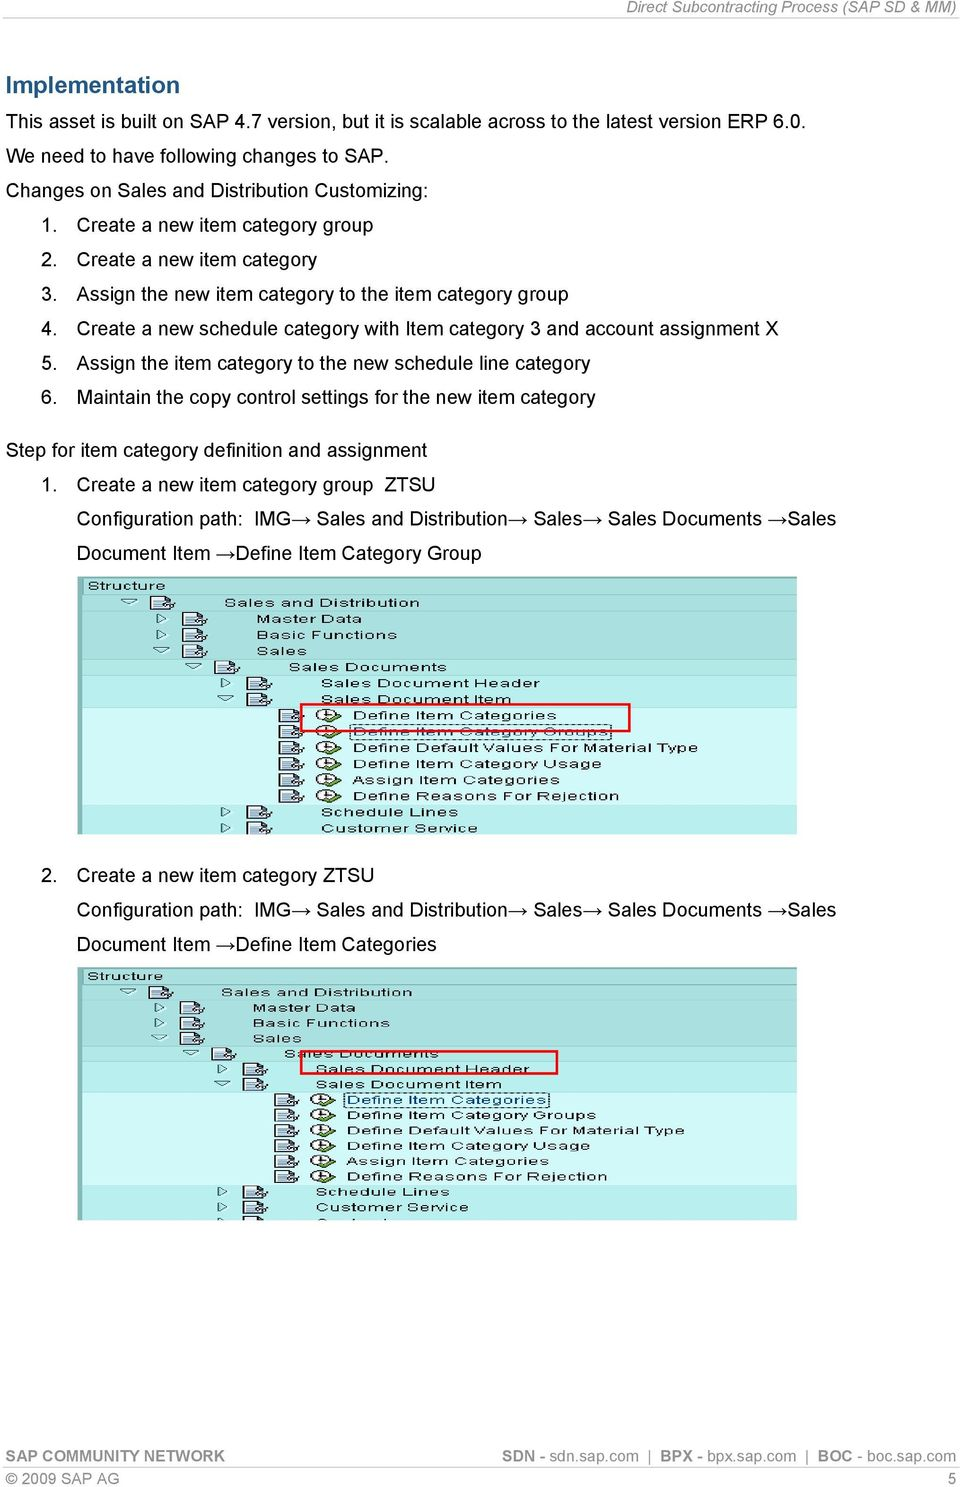 Direct Subcontracting Process (SAP SD & MM) - PDF